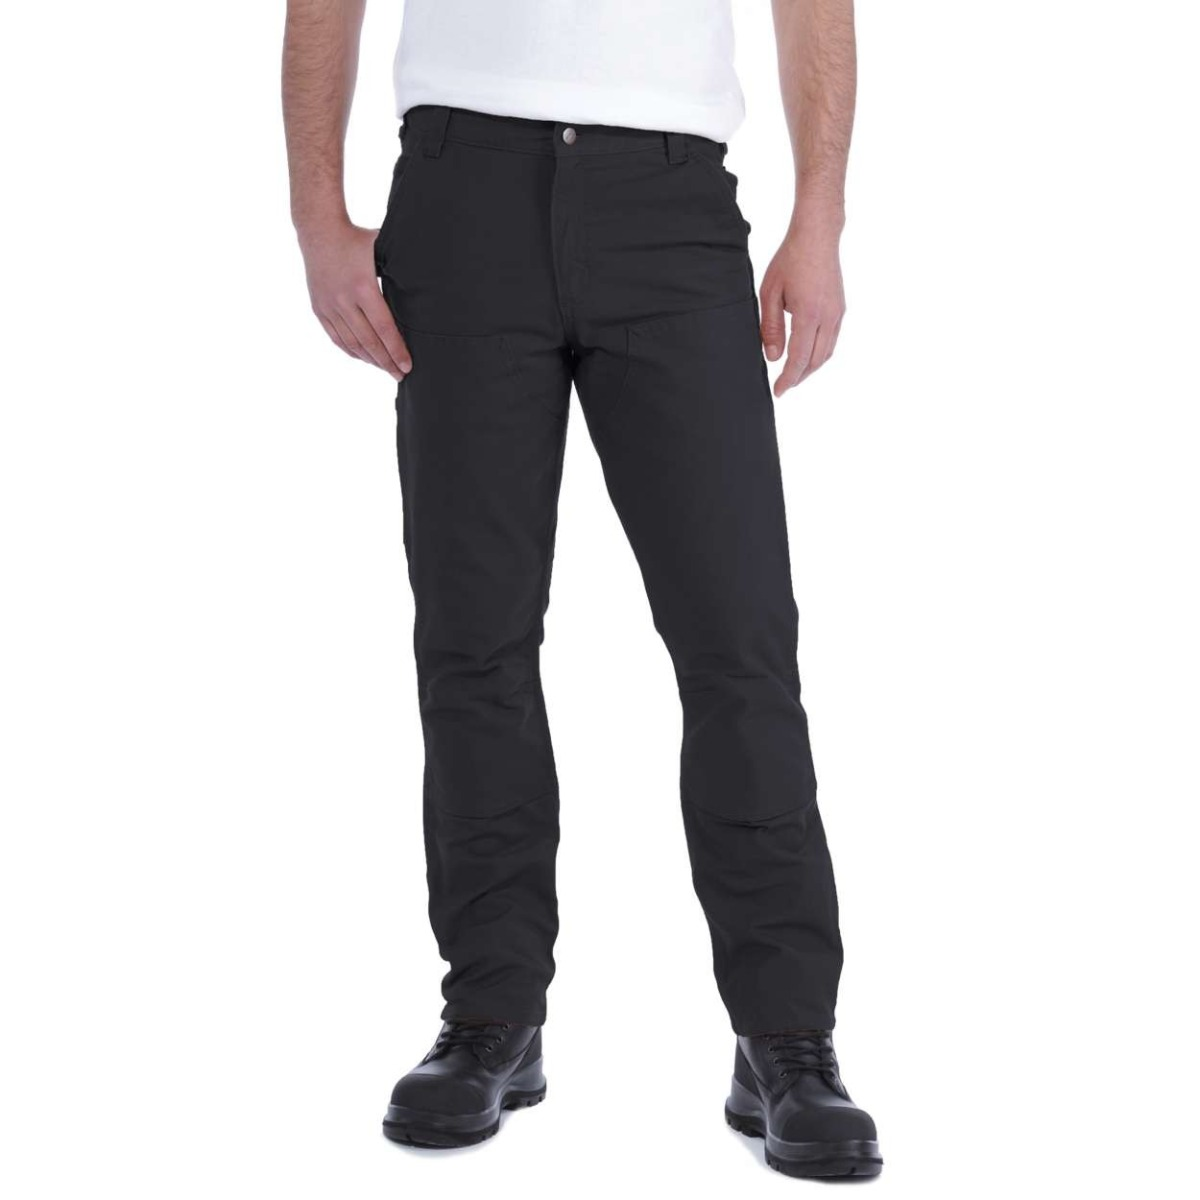 Carhartt Stretch Duck Double Front Trousers, Black, W36/L32